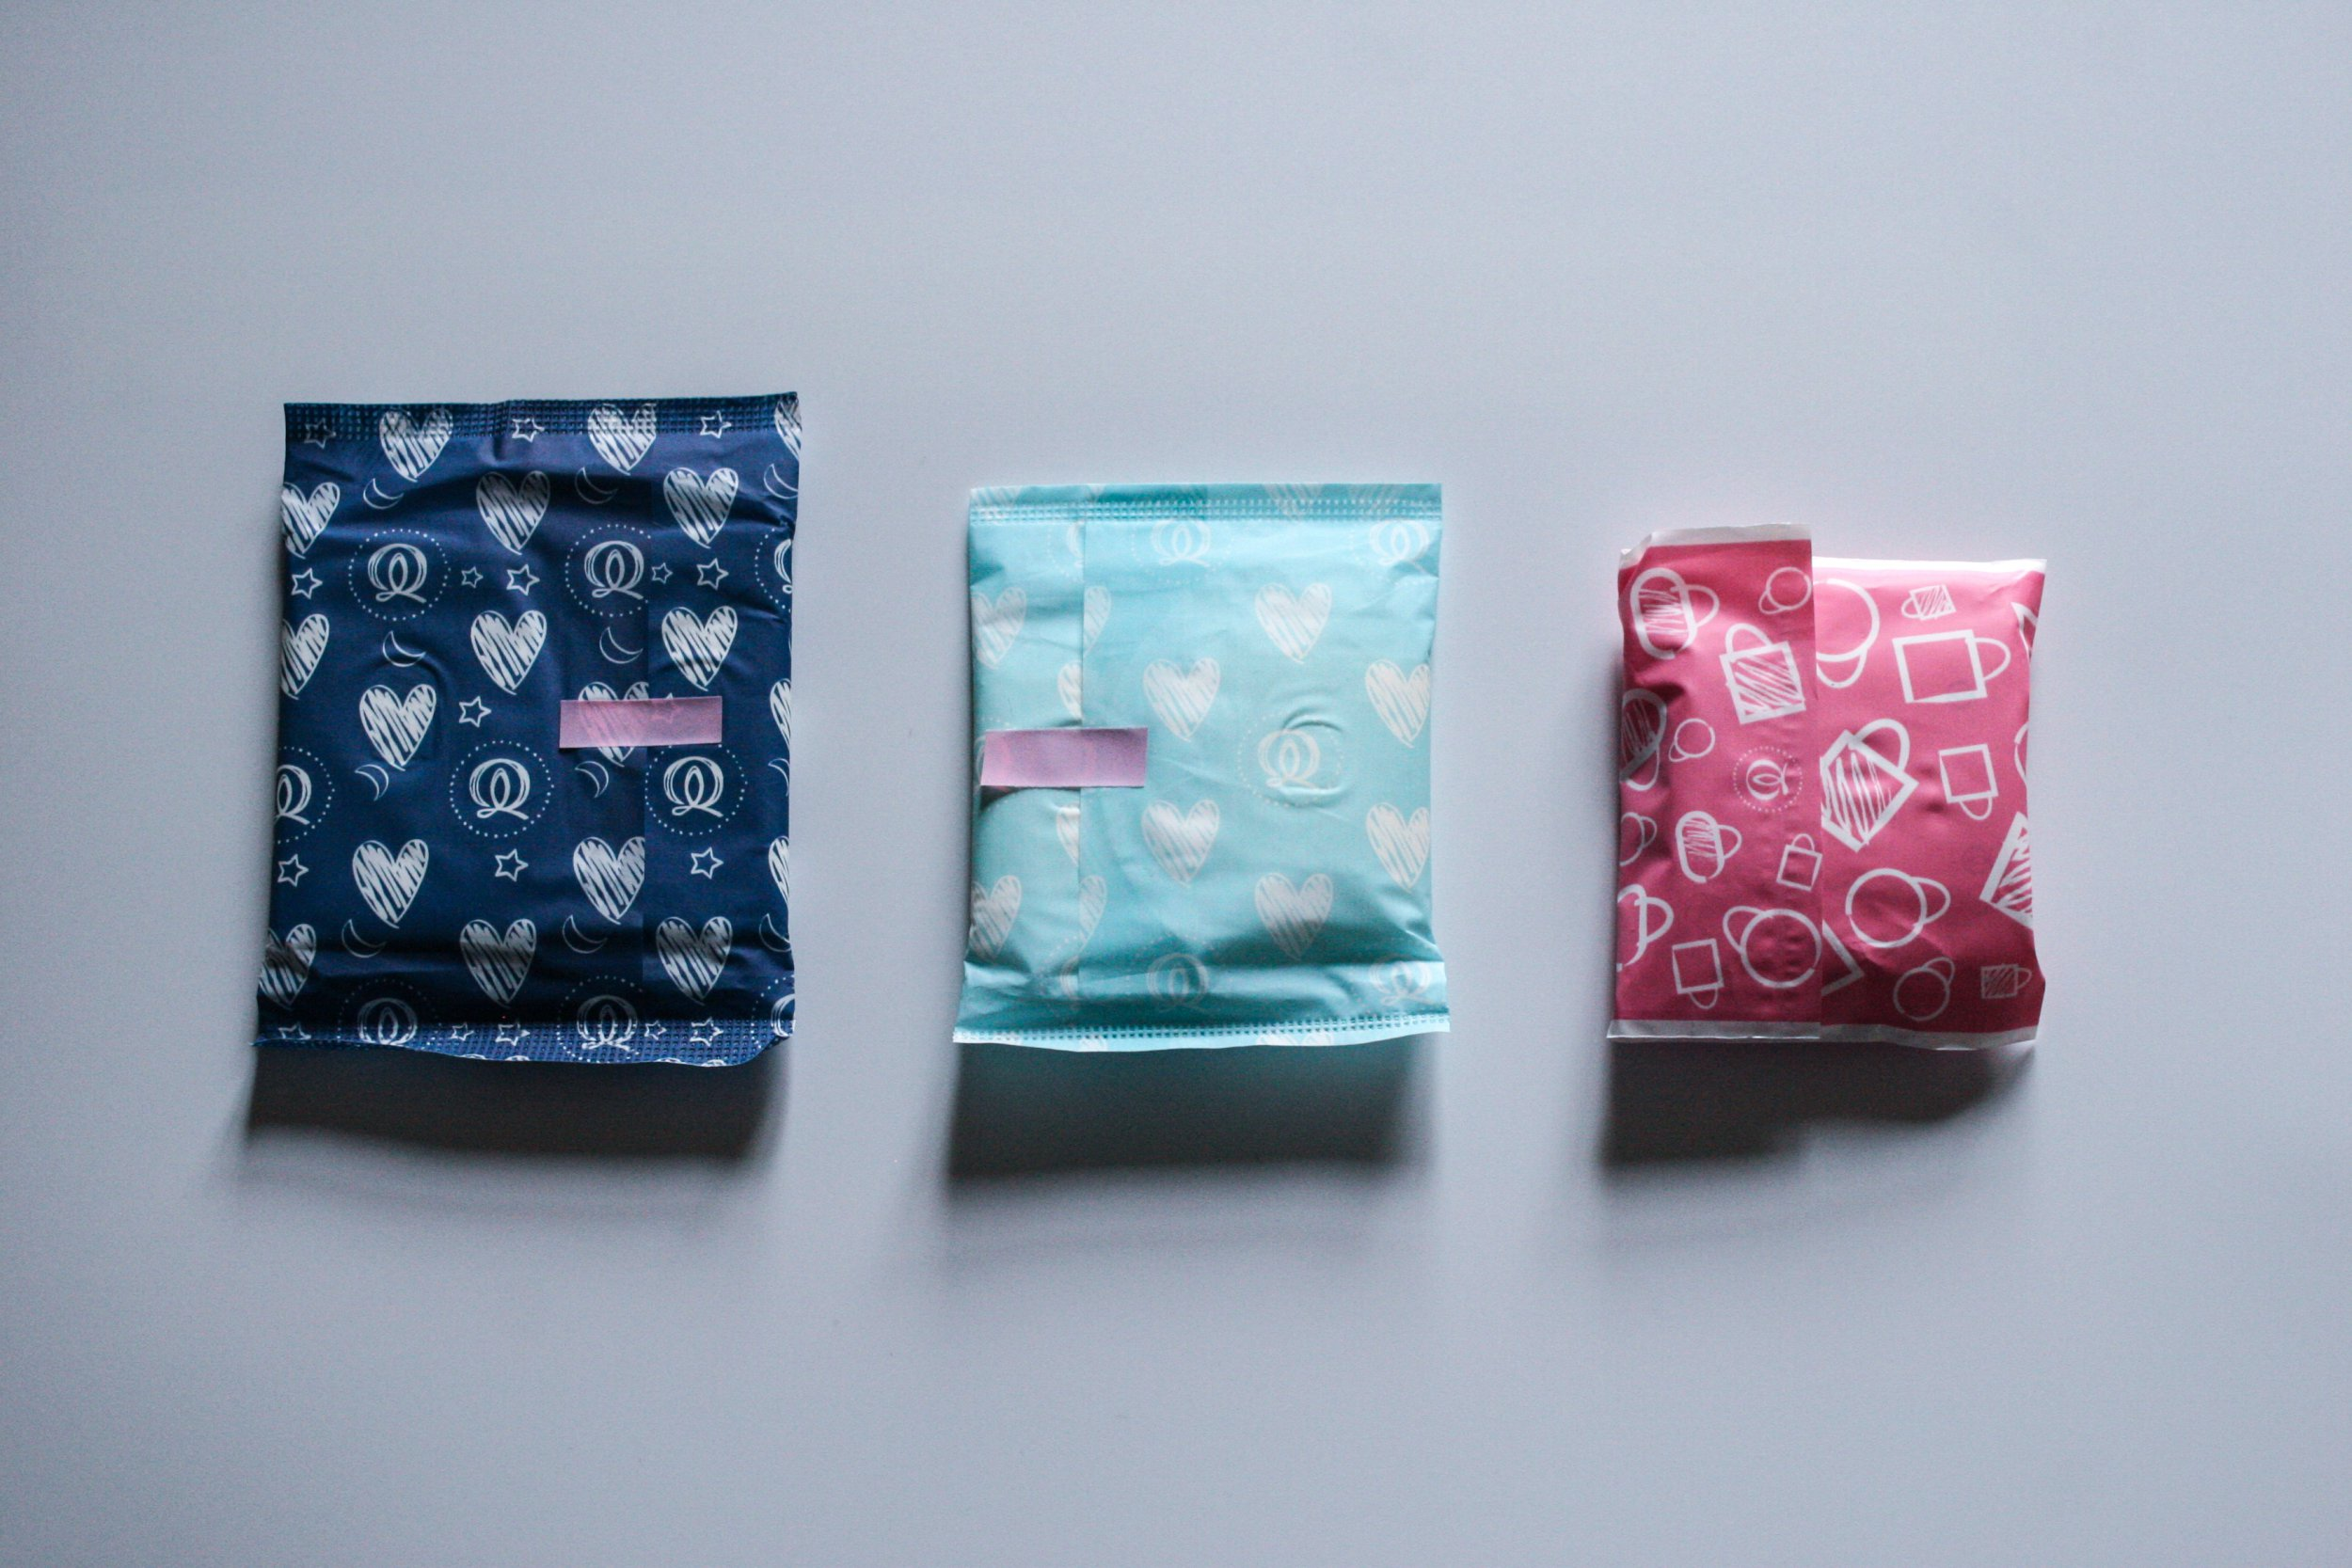 Set of three sanitary towels / panty liners in different sizes wrapped in different colours.